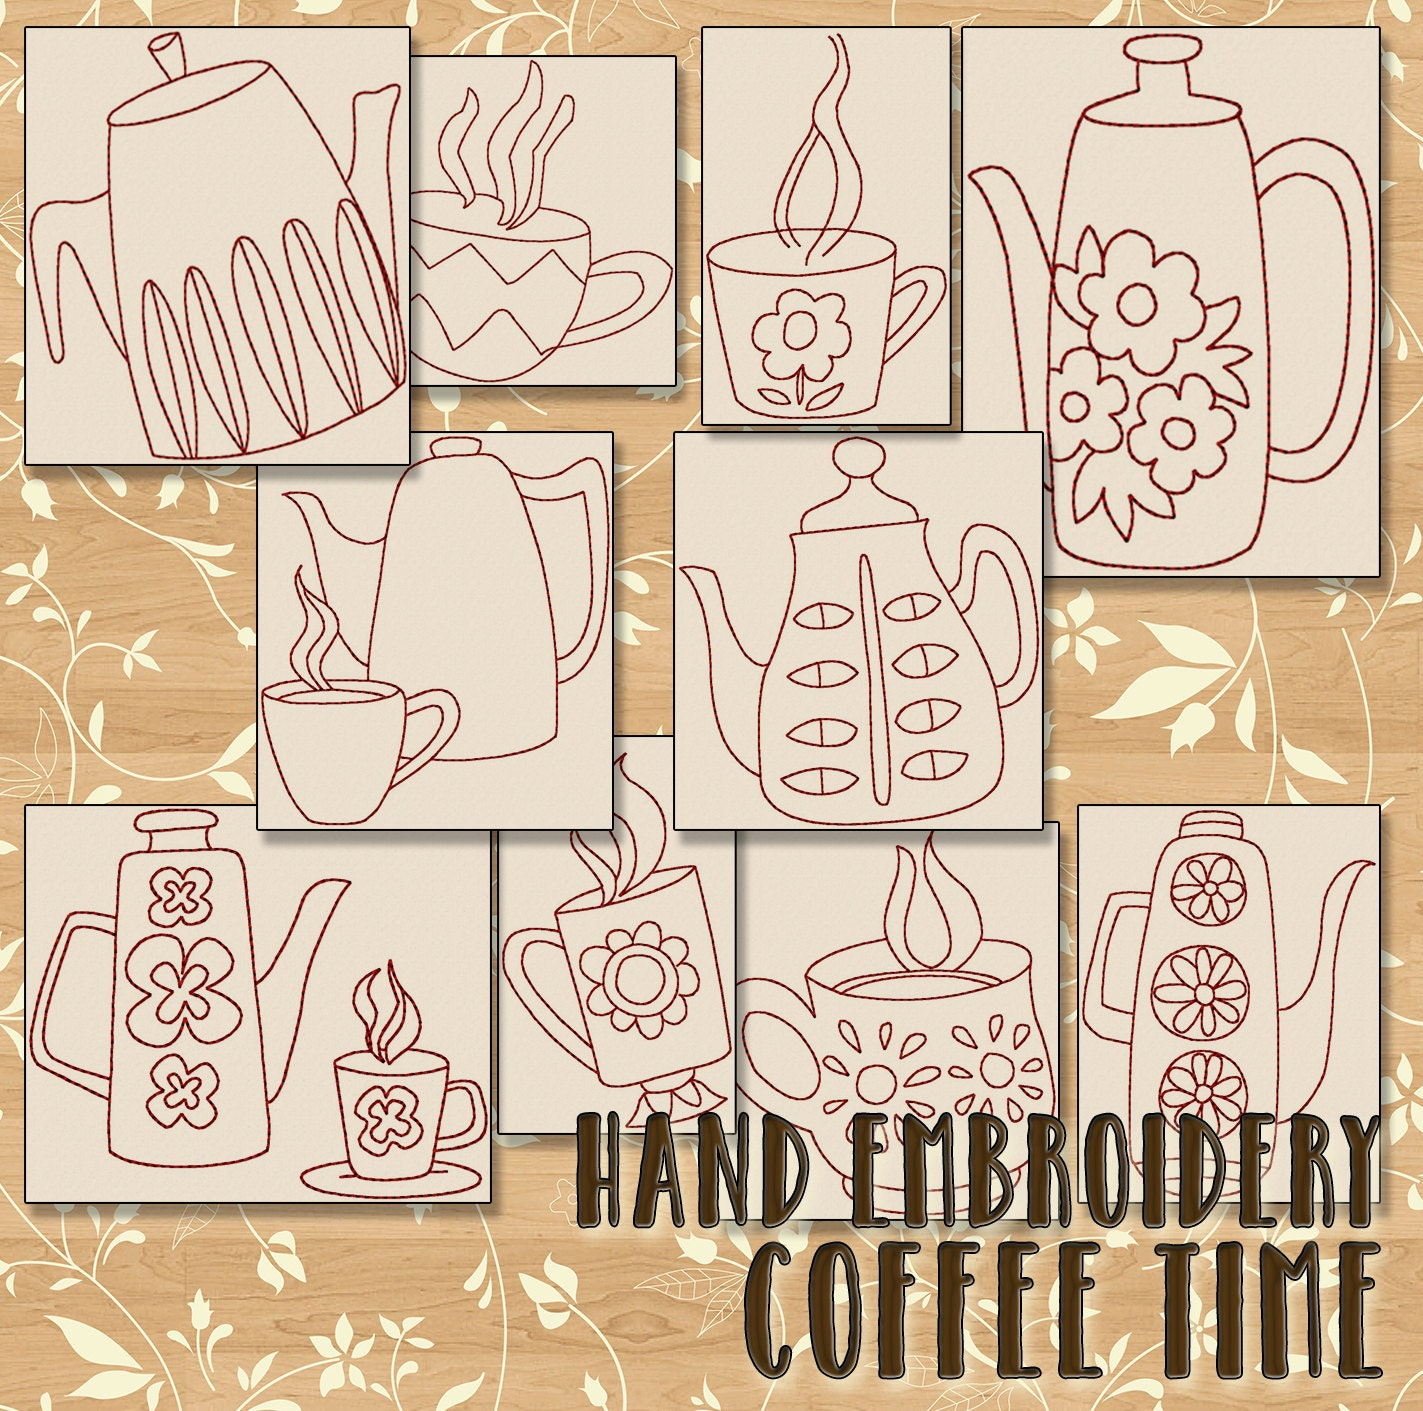 Sale hand embroidery patterns coffee time in 4 sizes pdf instant sale hand embroidery patterns coffee time in 4 sizes pdf instant download 10 designs kitchen needlework teapot retro embroidery designs bankloansurffo Choice Image